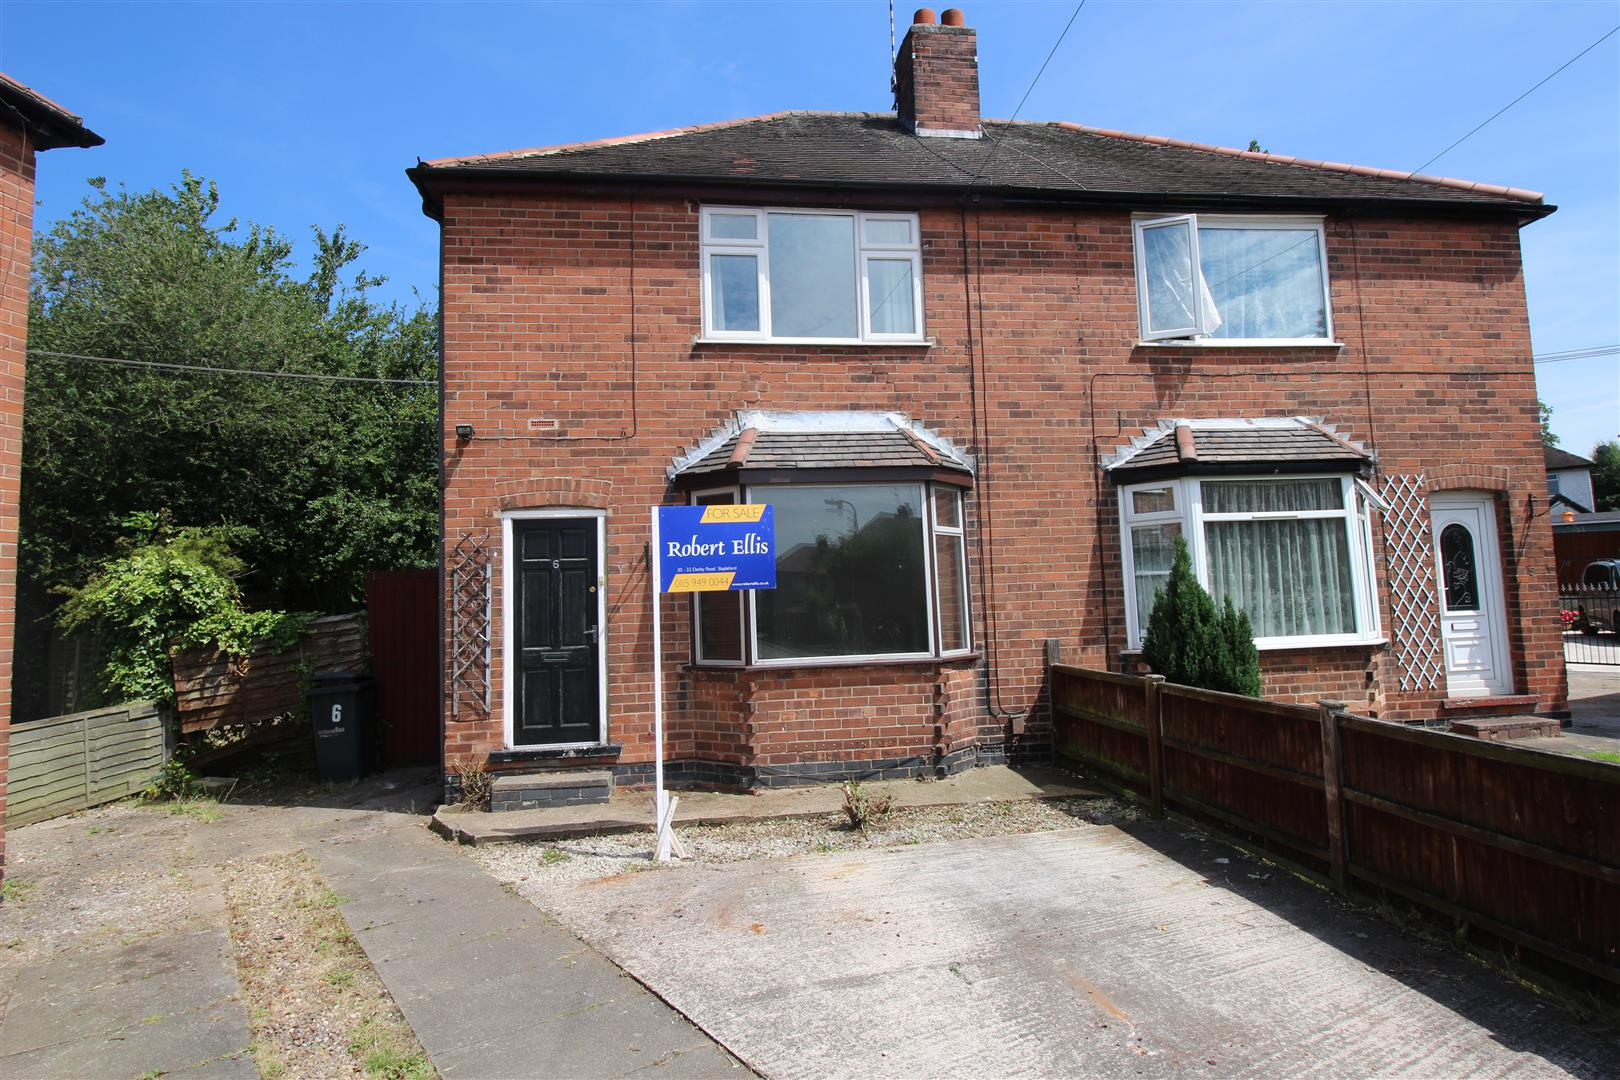 2 Bedrooms House for sale in Cavendish Crescent, Stapleford